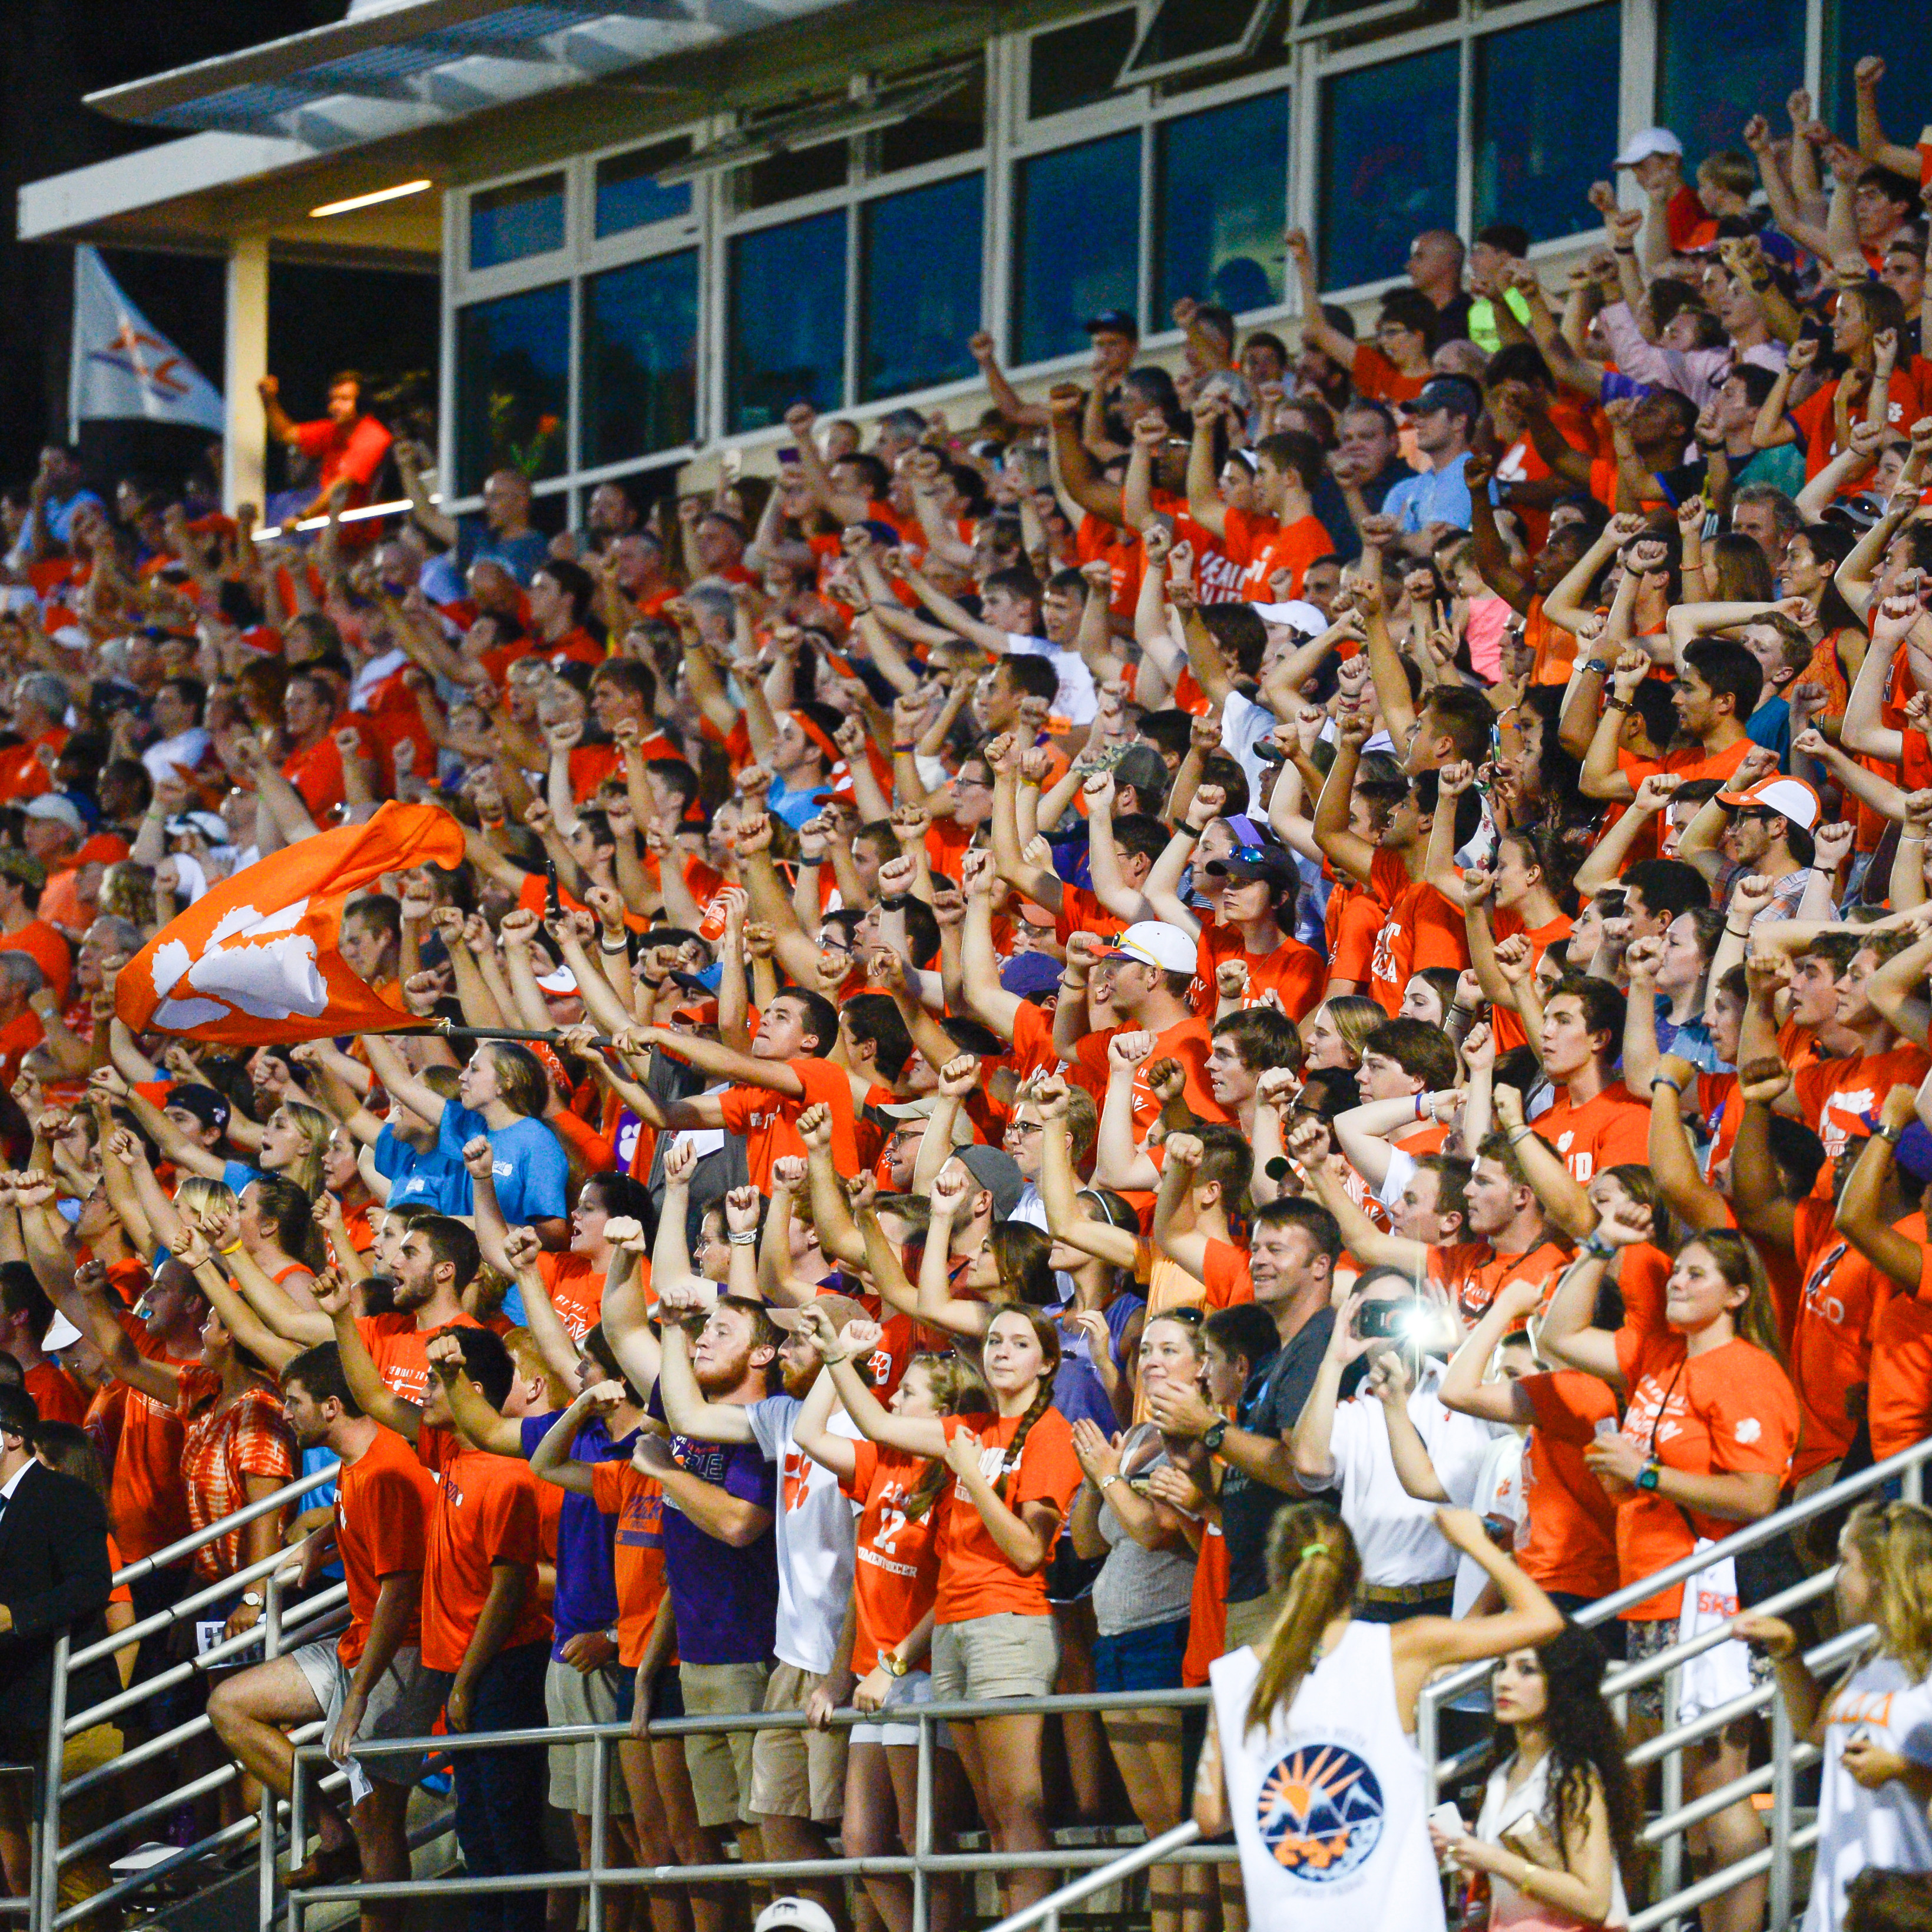 Tickets On Sale for Clemson?s NCAA First Round Contest Saturday vs. Furman